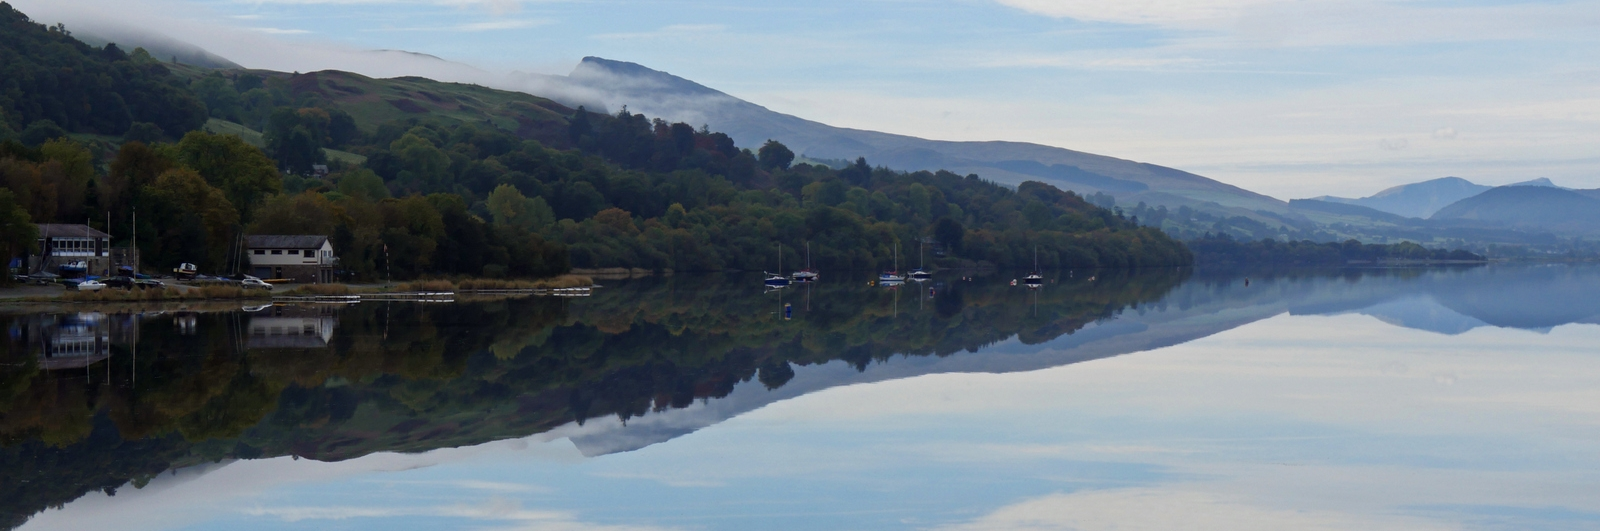 Llyn Celyn Reflections